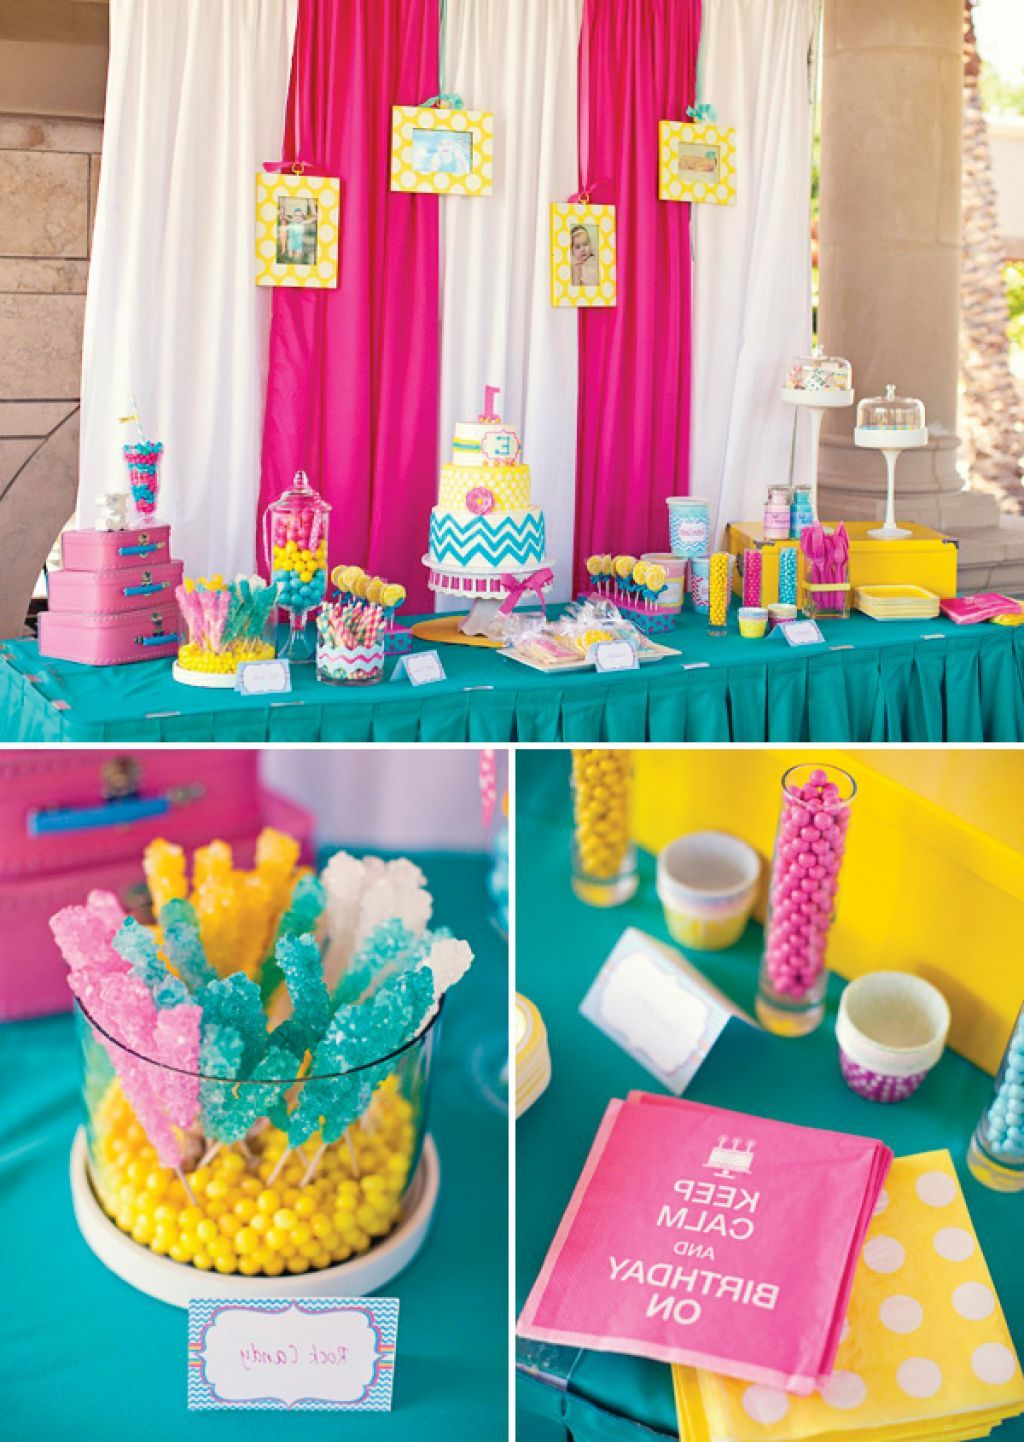 year old girl birthday ideas fair first party theme deaefe spring also lila schaffer on pinterest rh